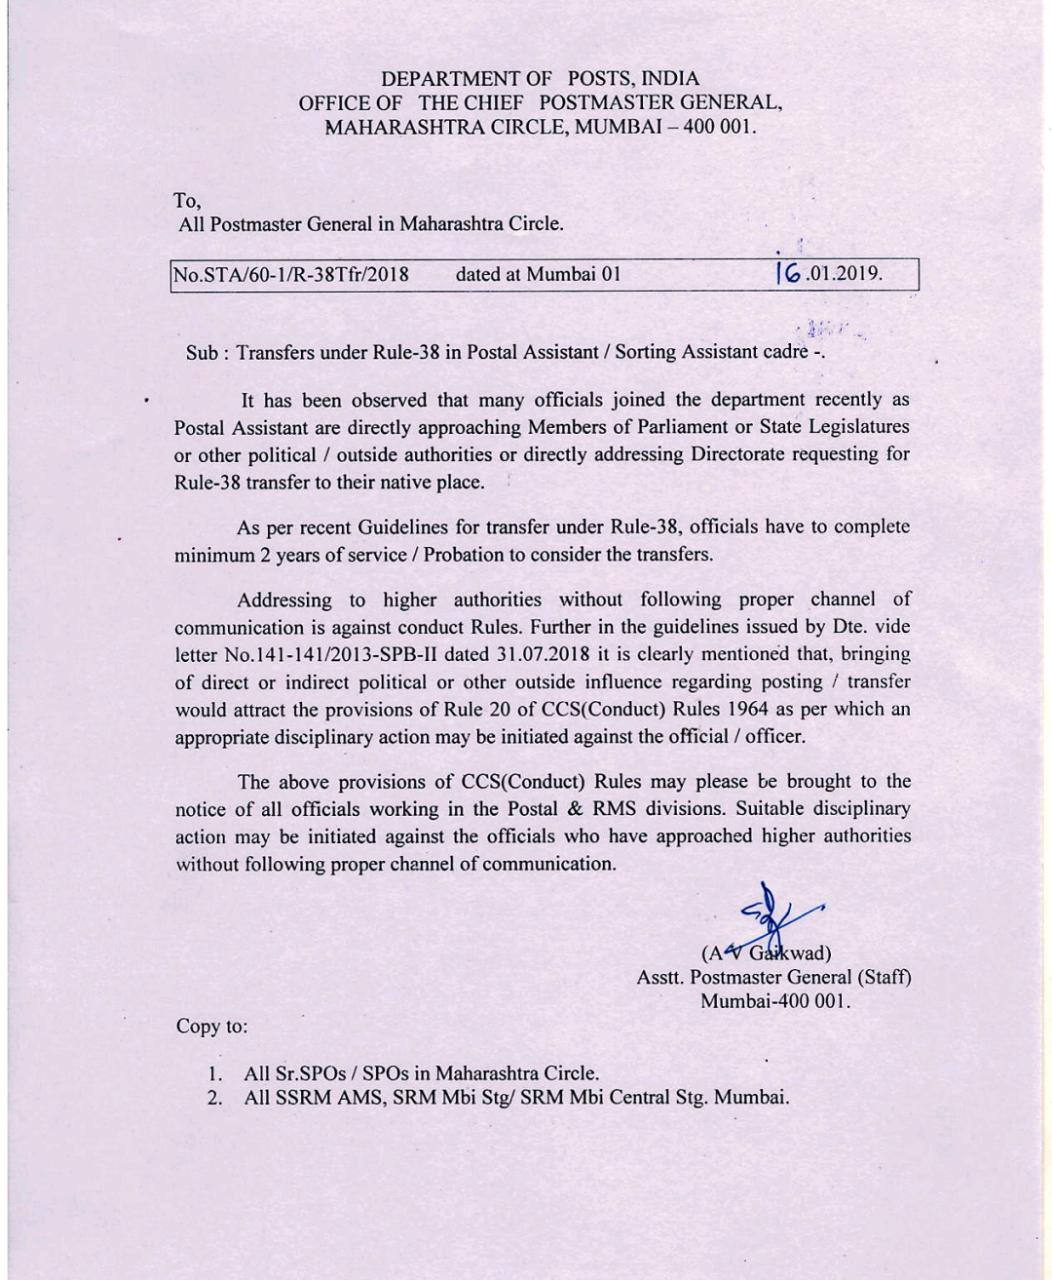 Transfers under Rule-38 in Postal Assistant / Sorting Assistant Cadre [About Rule 20 of CCS(Conduct) Rules 1964]